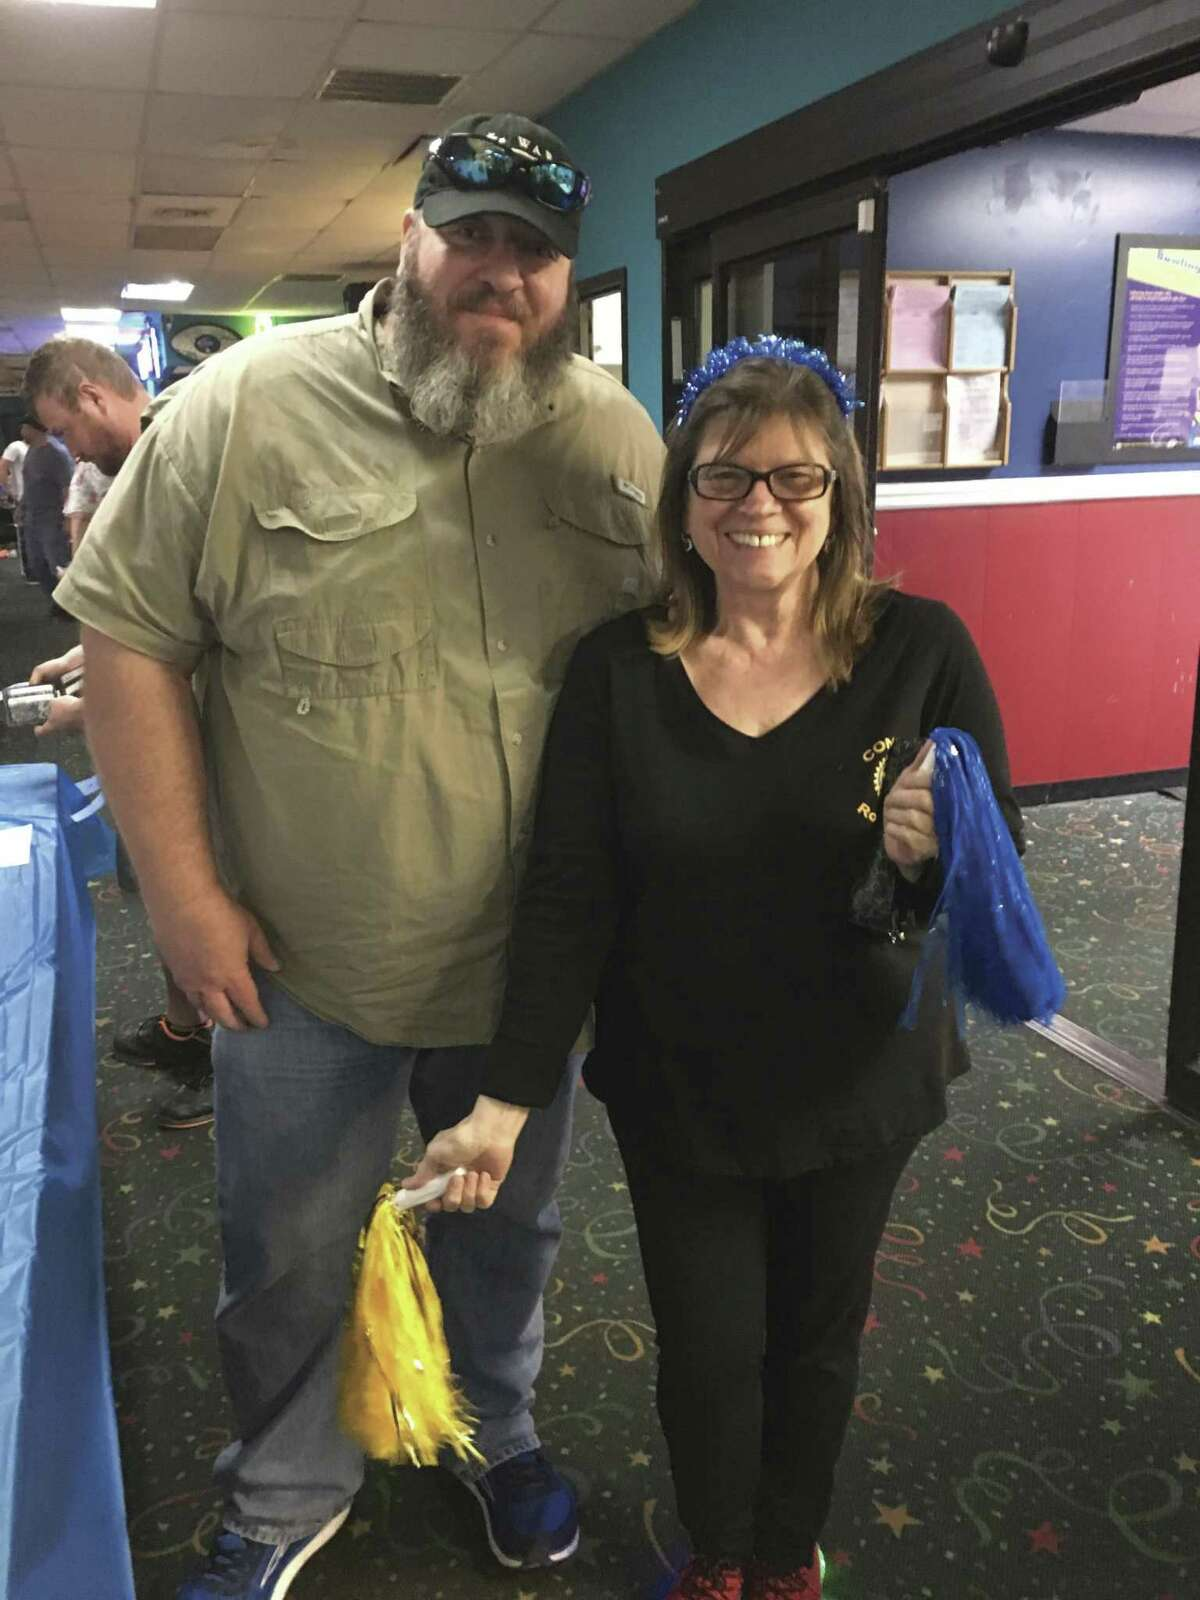 Rotary Club of Conroe members Chris Sadler, left, and Kris Nordstrom McBride, are pictured at the club's First 5th Tuesday Bowling Night Tuesday night at 300 Bowl in Conroe.